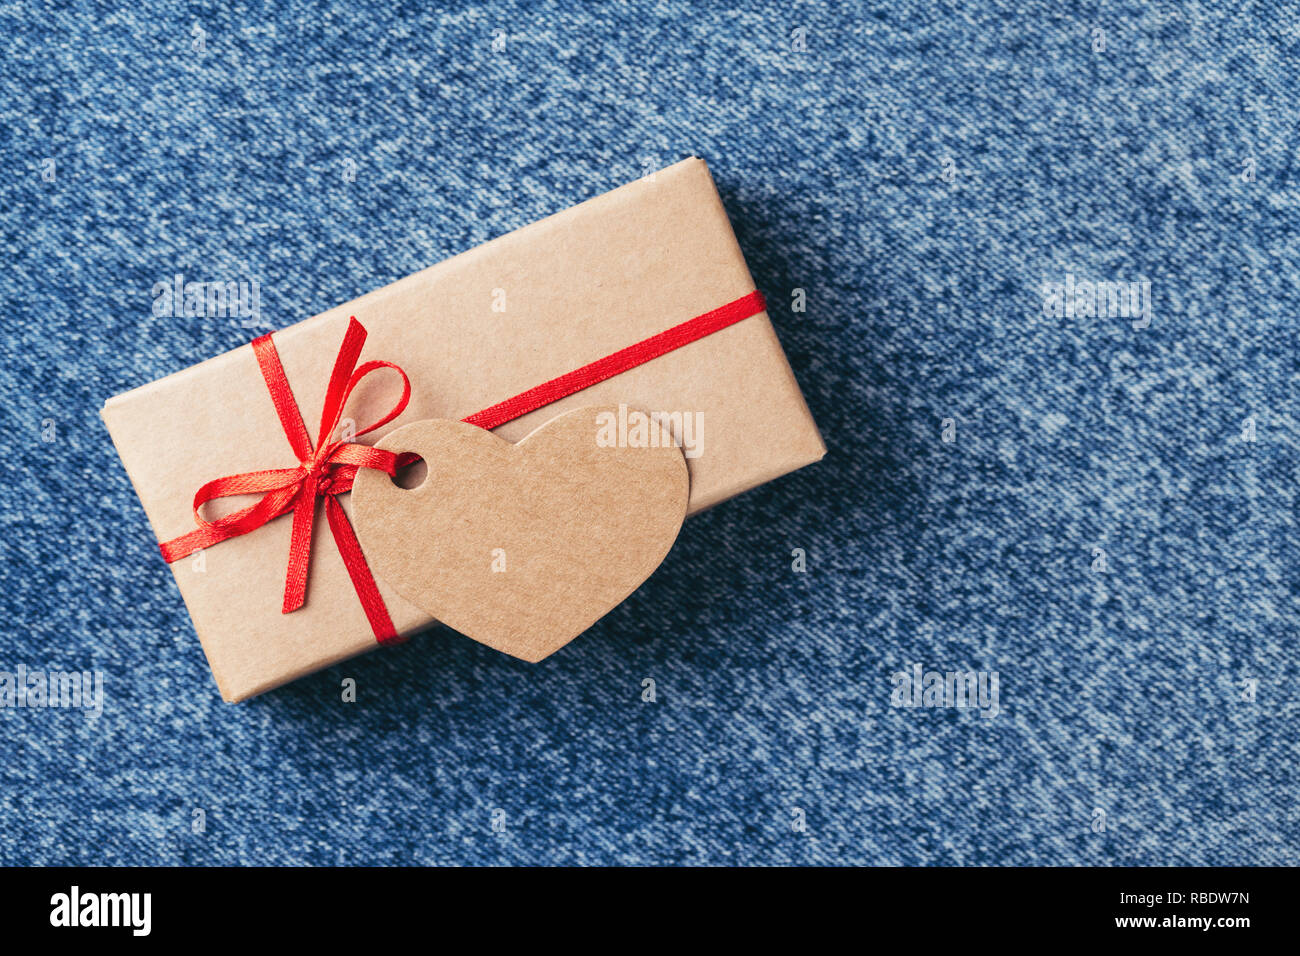 Kraft gift box with red bow and tag in shape of heart on blue jeans. Valentine's day card. Stock Photo